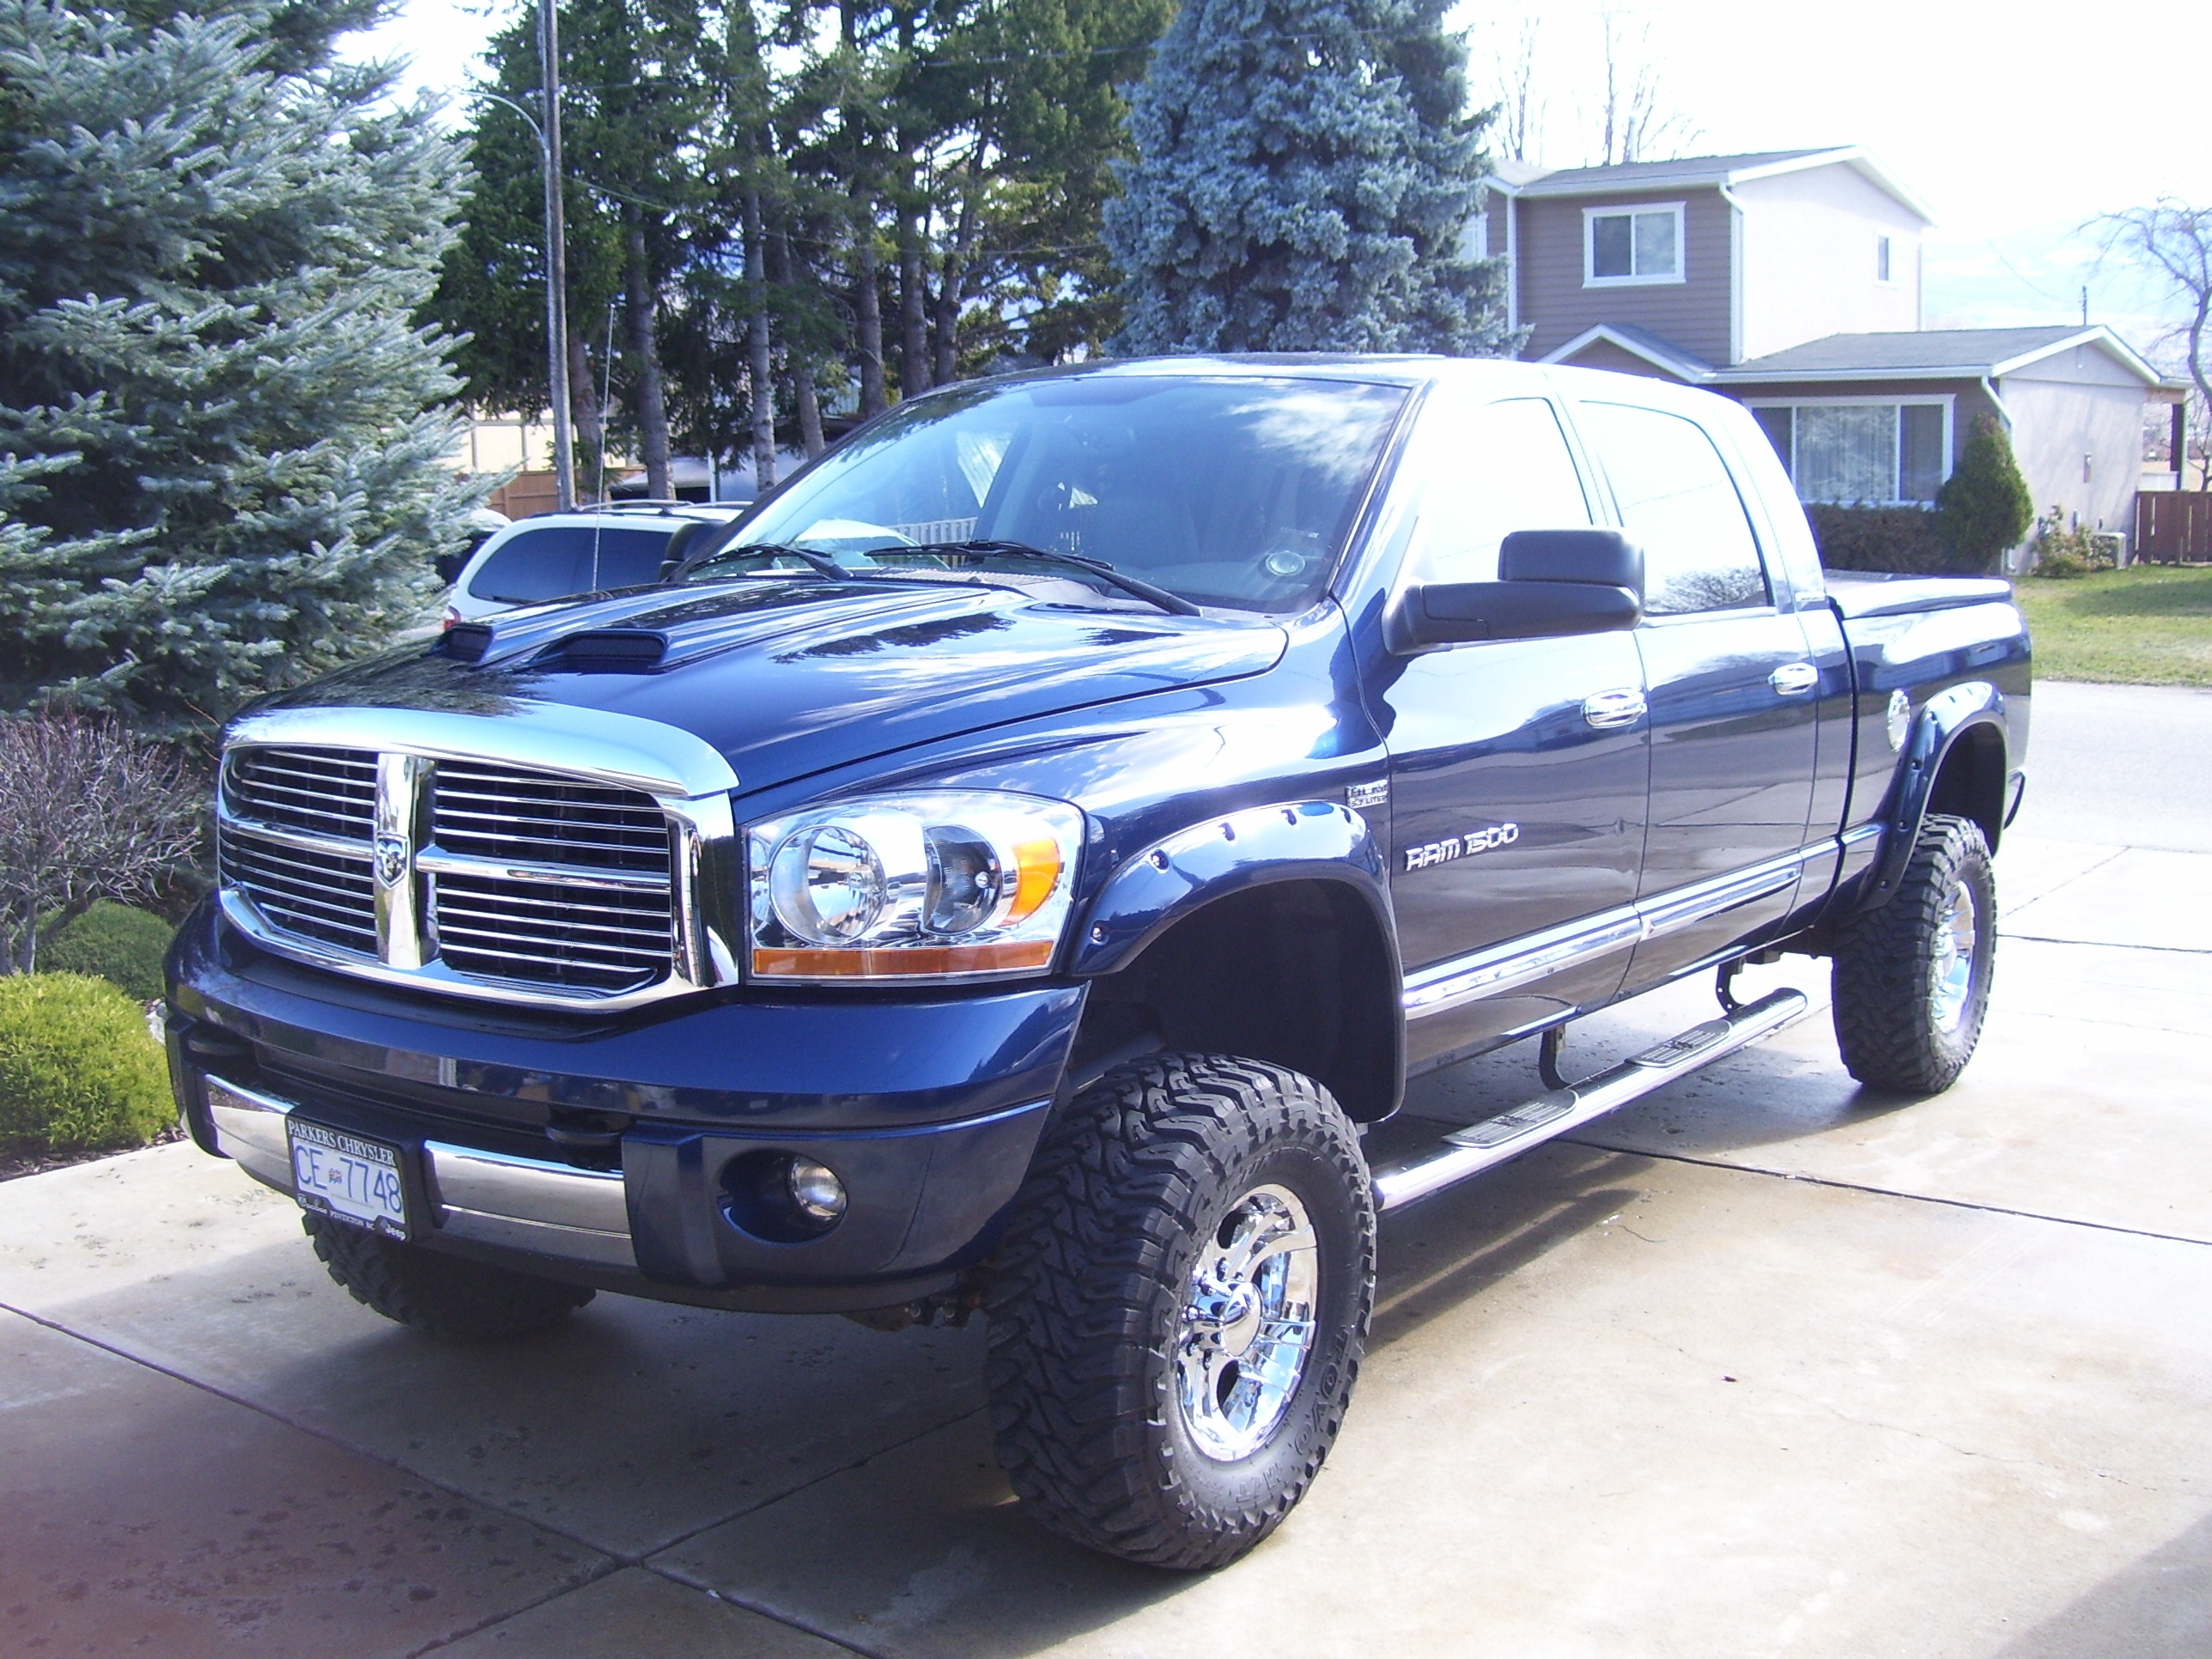 defrez 2006 dodge ram 1500 mega cab specs photos modification info at cardomain. Black Bedroom Furniture Sets. Home Design Ideas